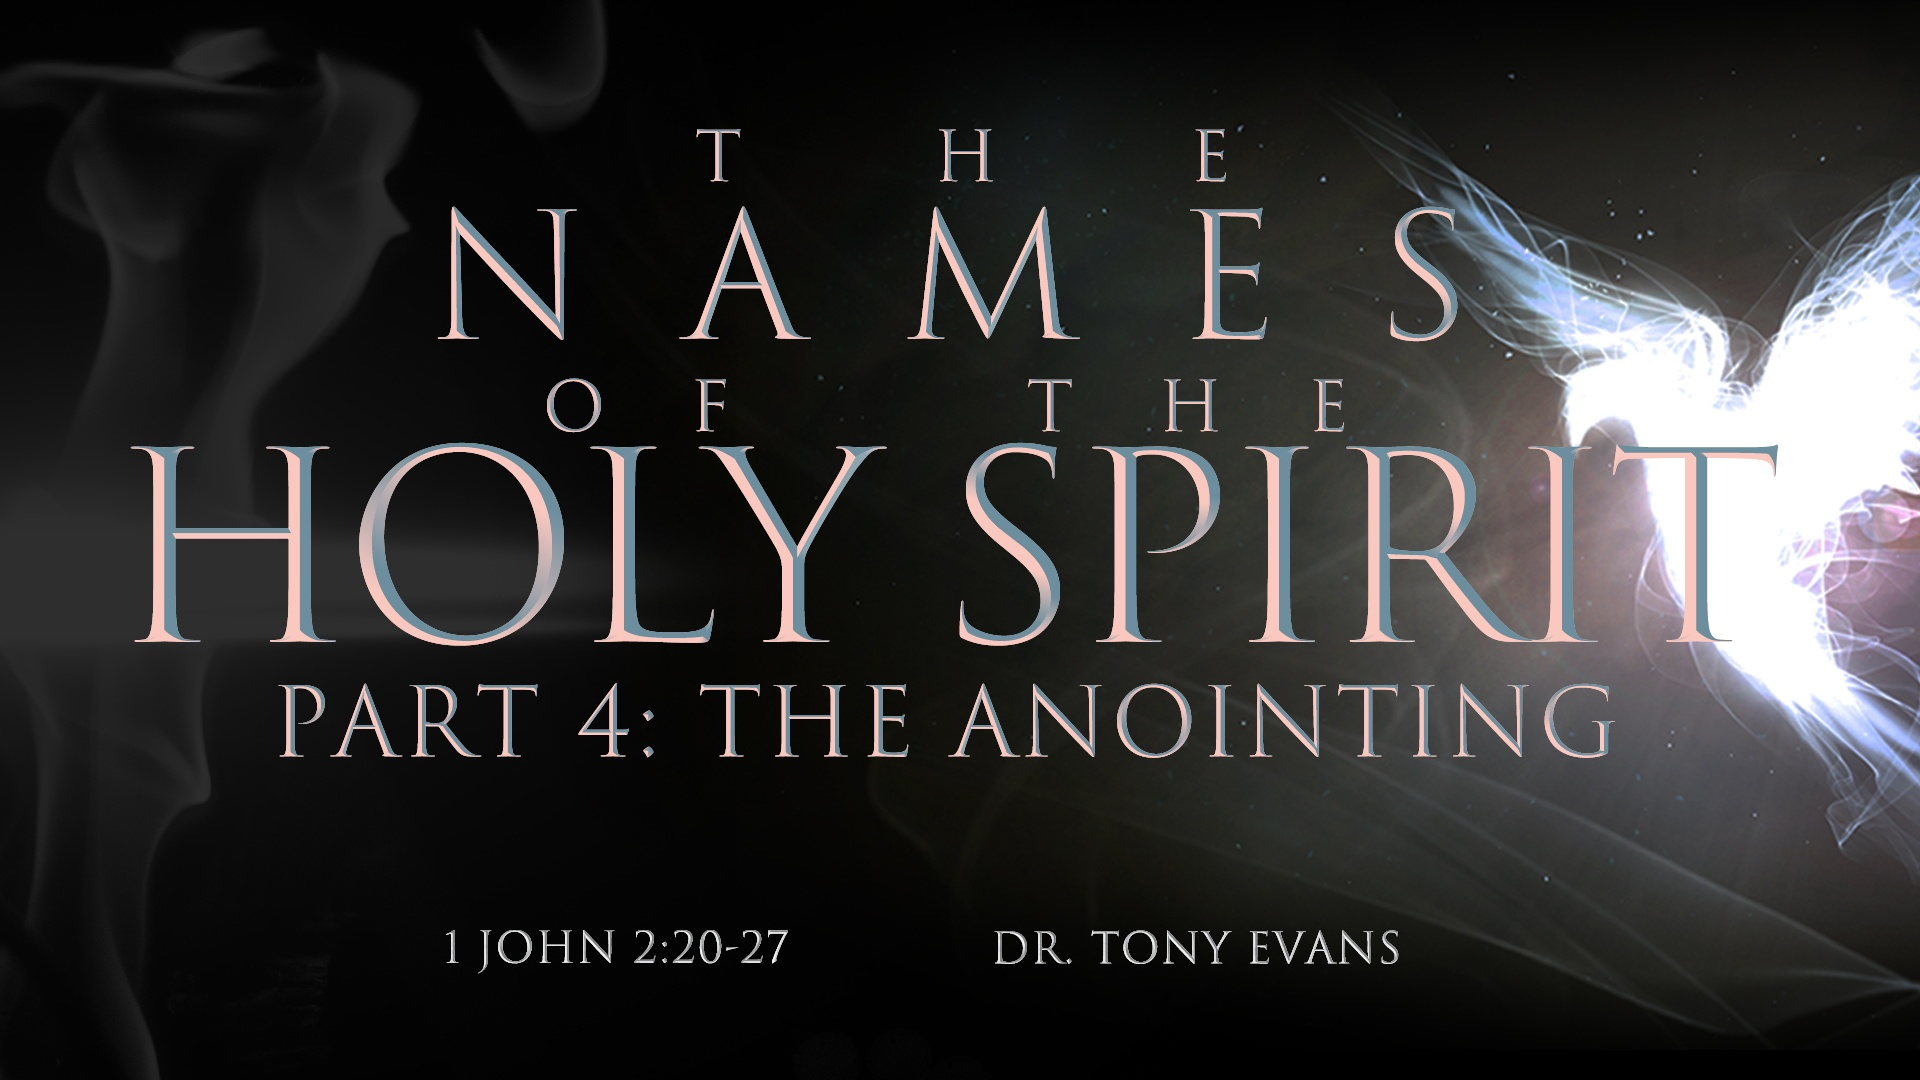 """The Anointing"" by Dr. Tony Evans (series: Names of the Holy Spirit)"